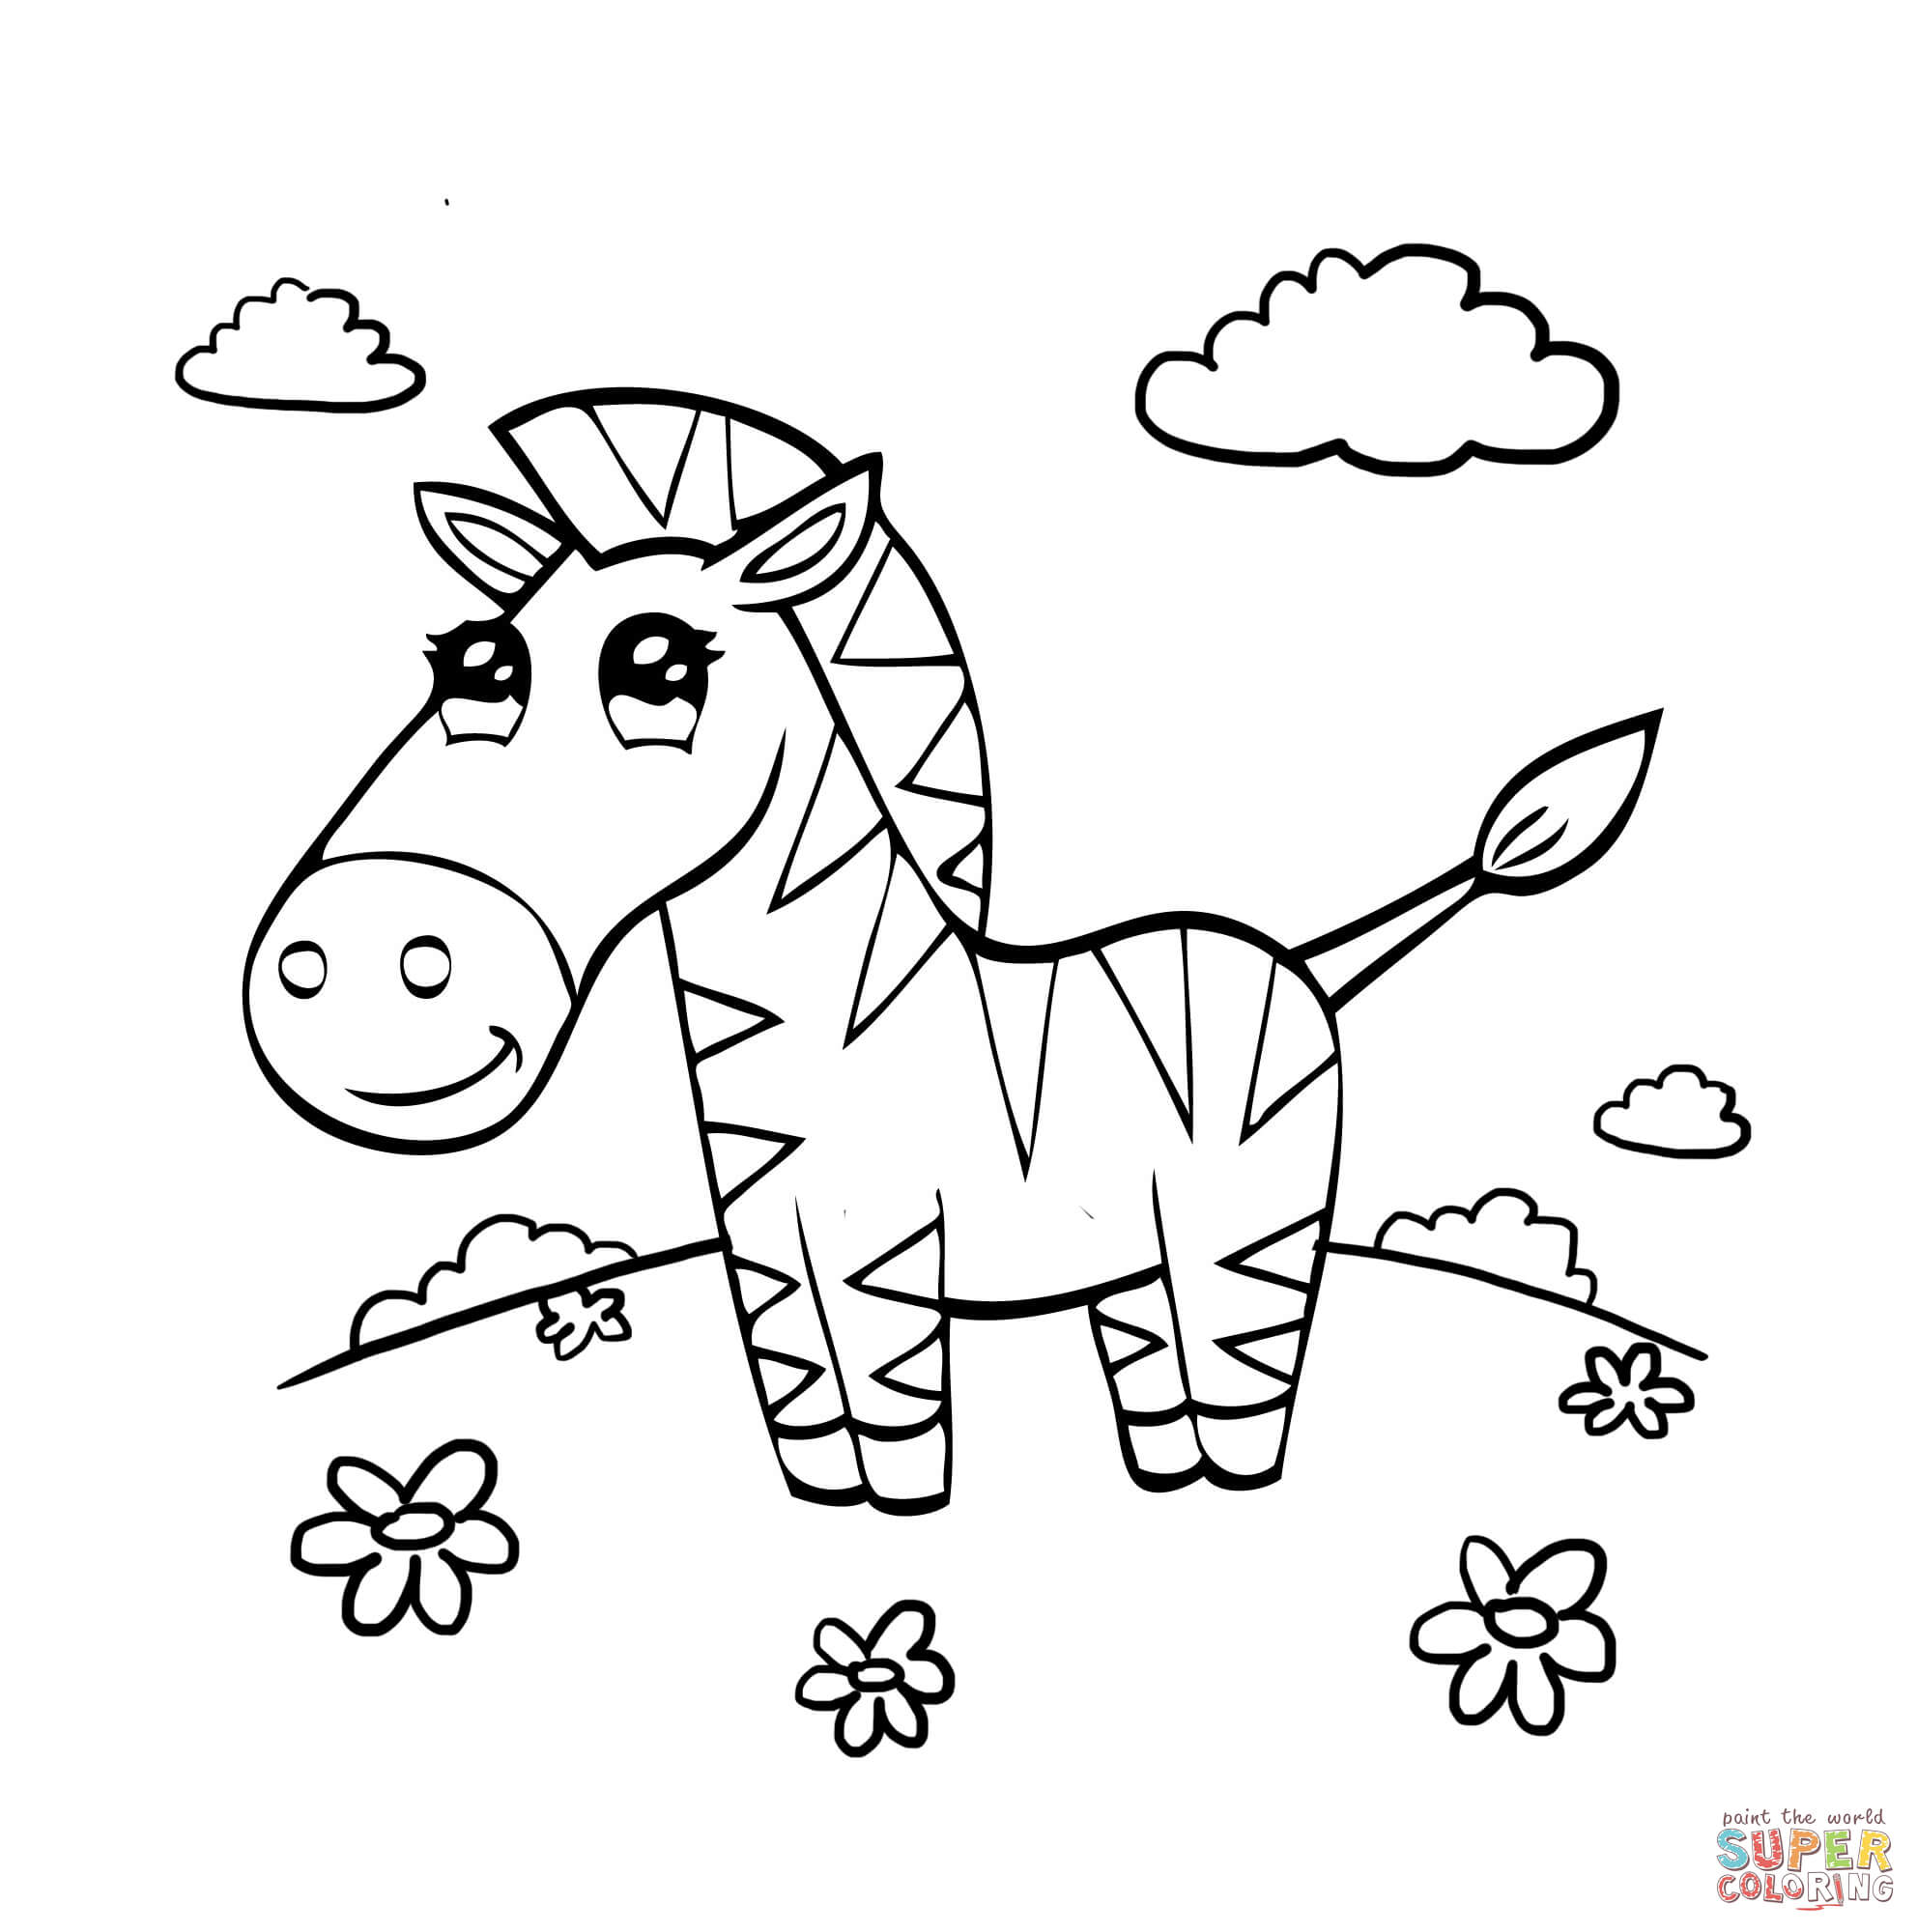 zebra print coloring pages free zebra coloring pages for adults printable to print zebra coloring pages